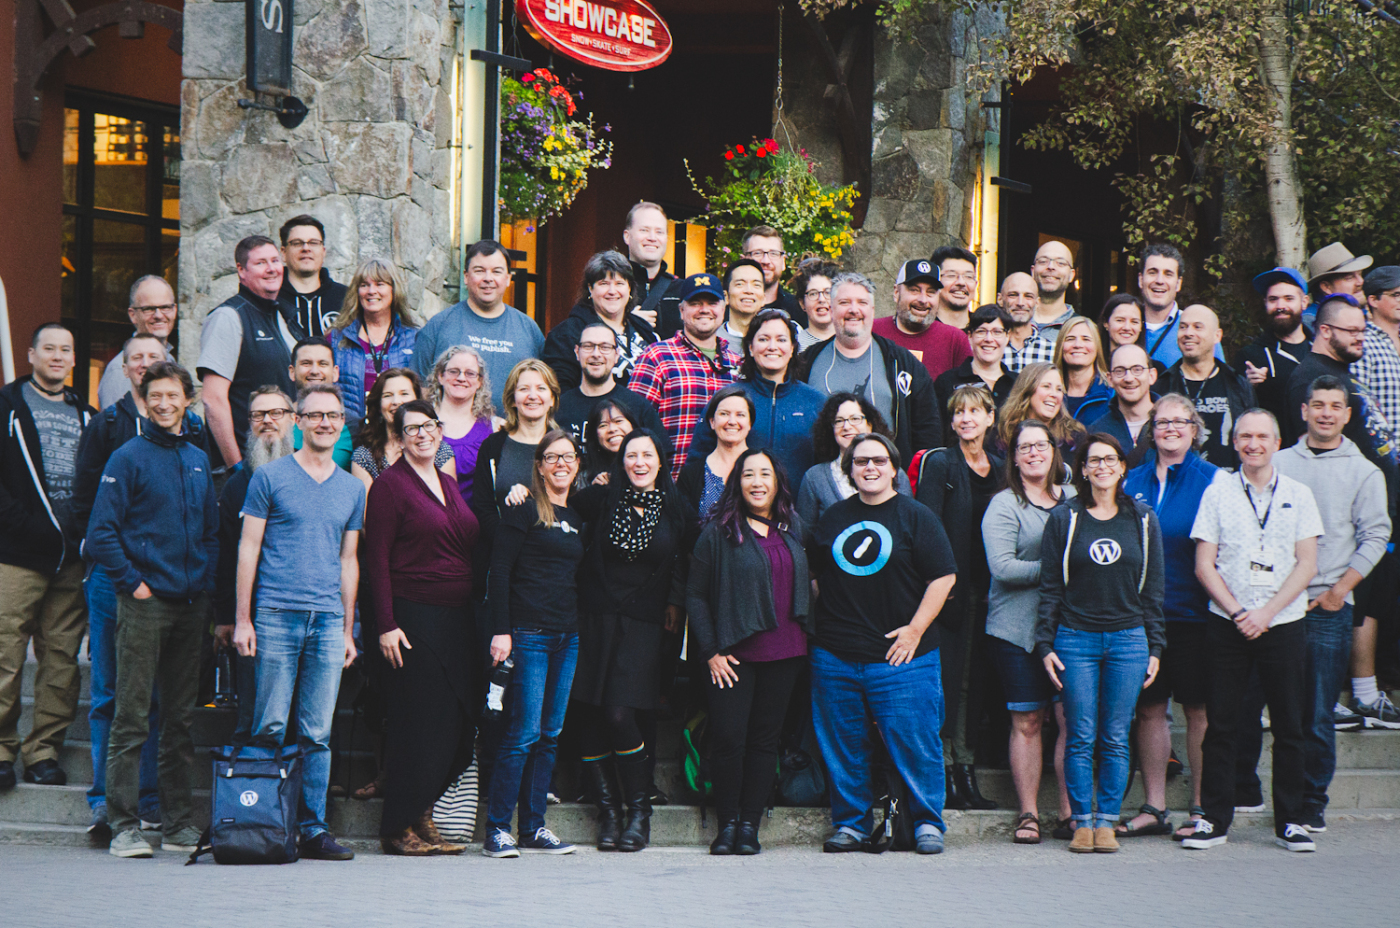 Some of the over-40-year-old workers at Automattic (image taken by my co-workerJen Hooks at our company's Grand Meetup at Whistler).